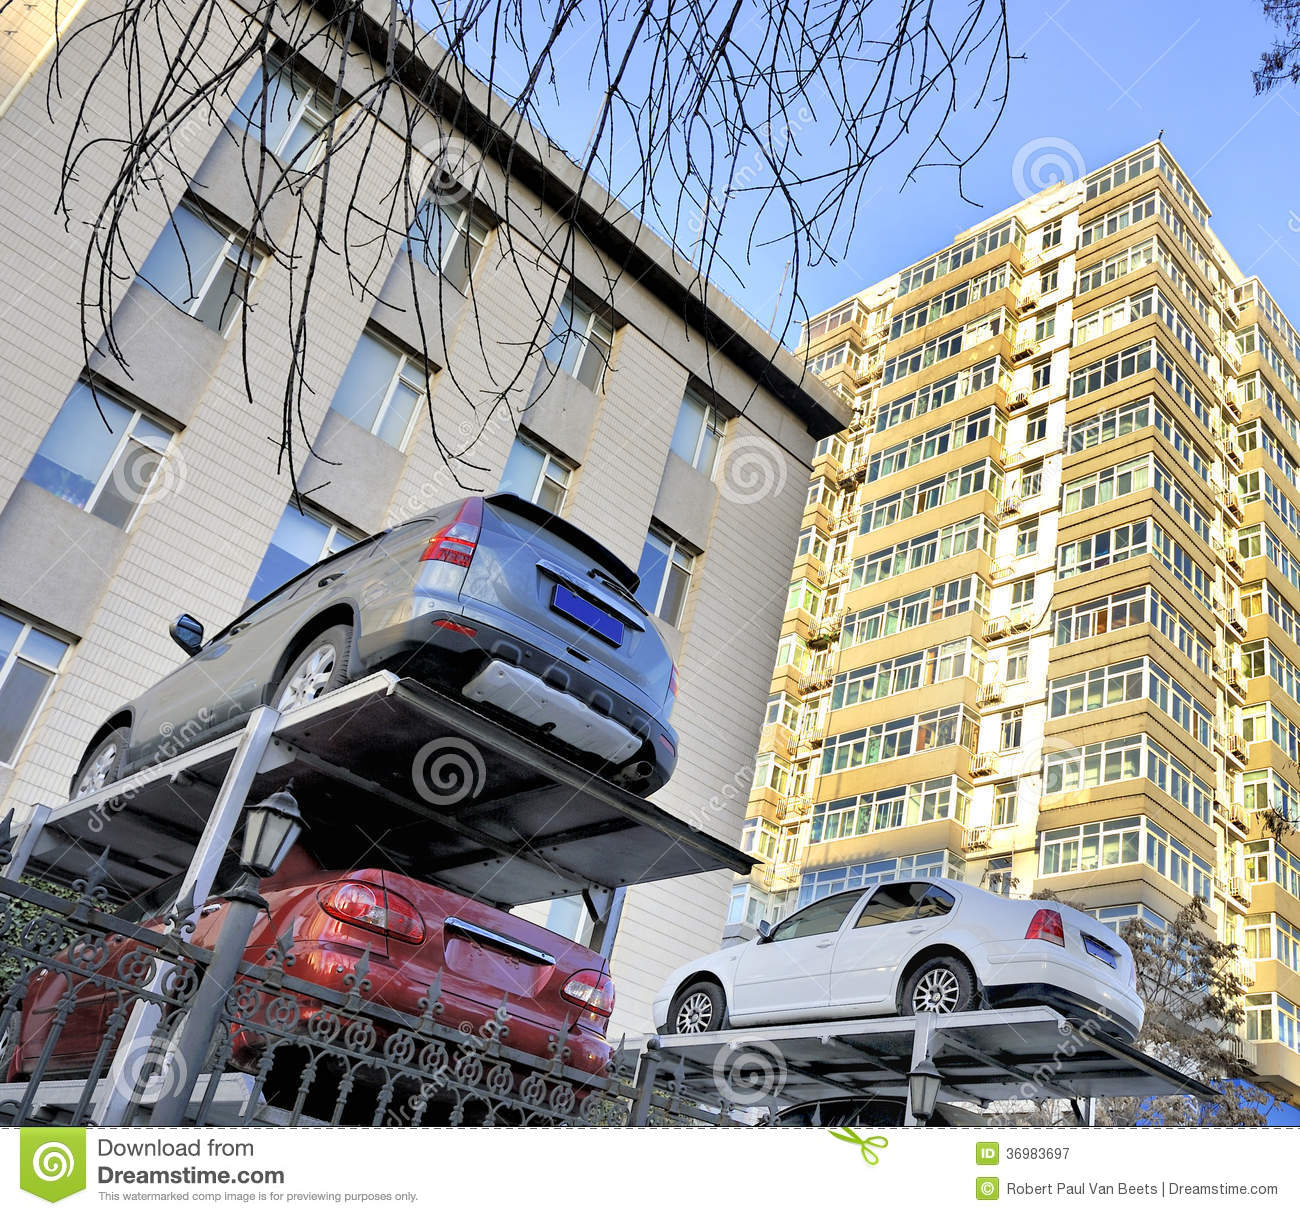 15 Creative, Innovative & Hilarious Parking Solutions